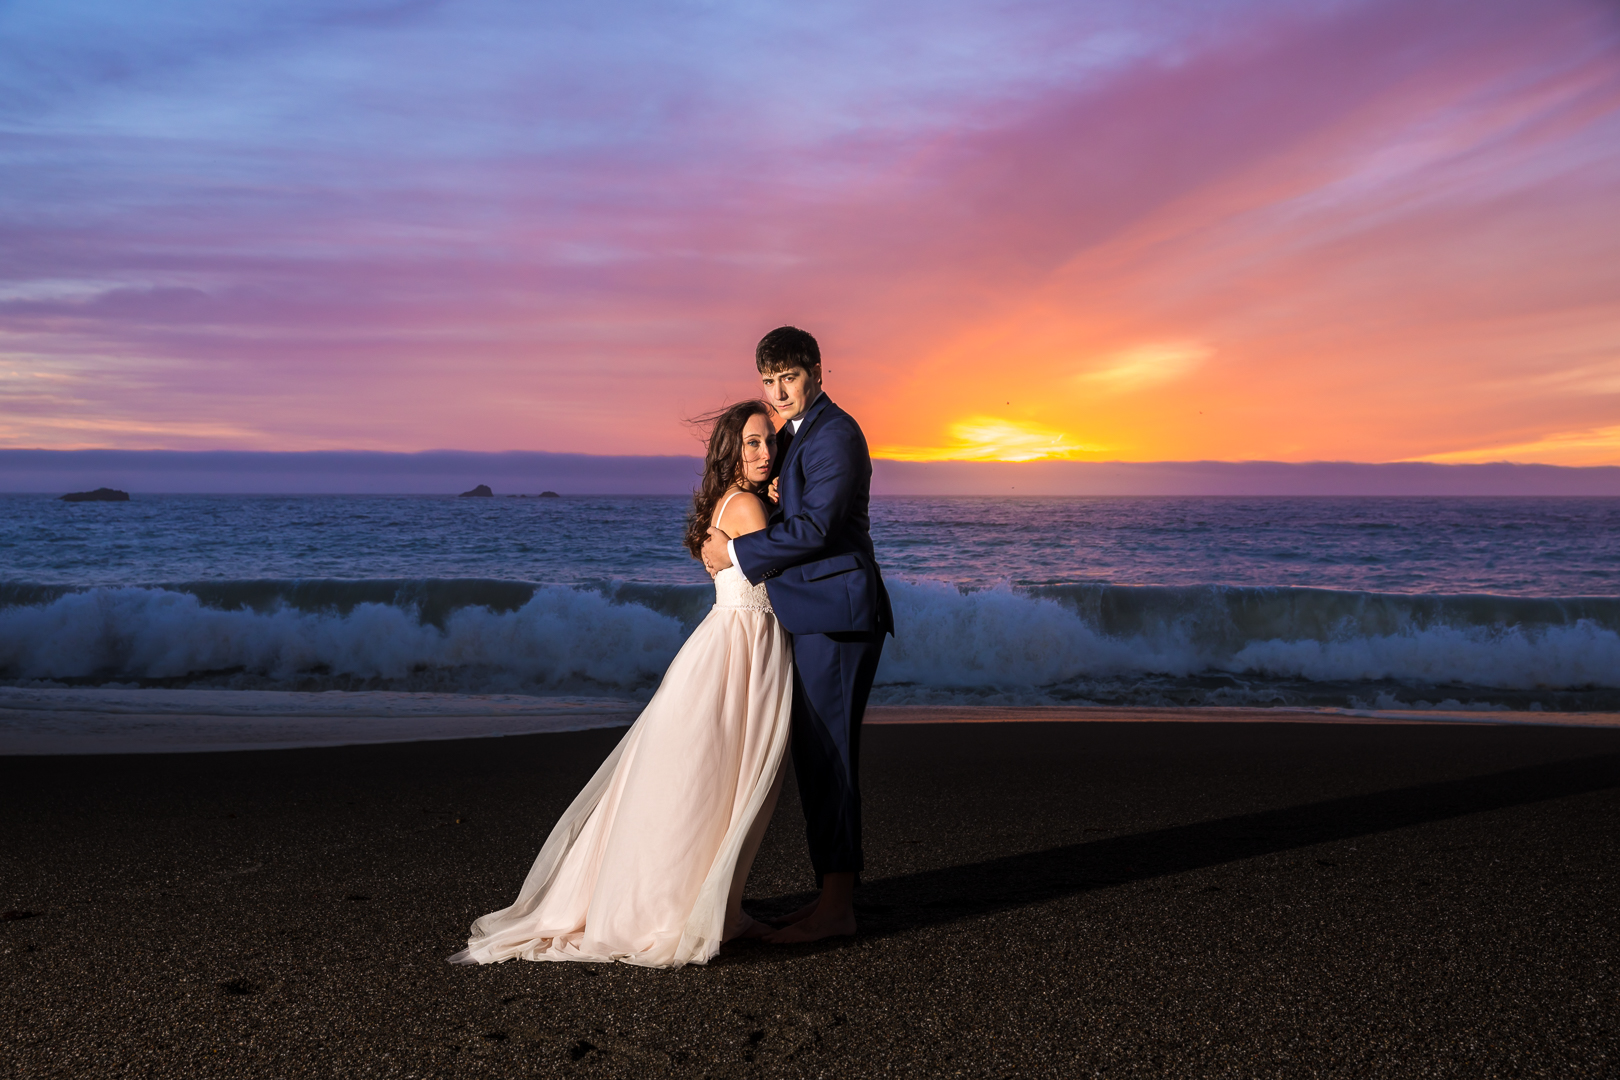 Take Action - Ready to take the next step? Let's book your destination wedding and create memories that will last a lifetime.